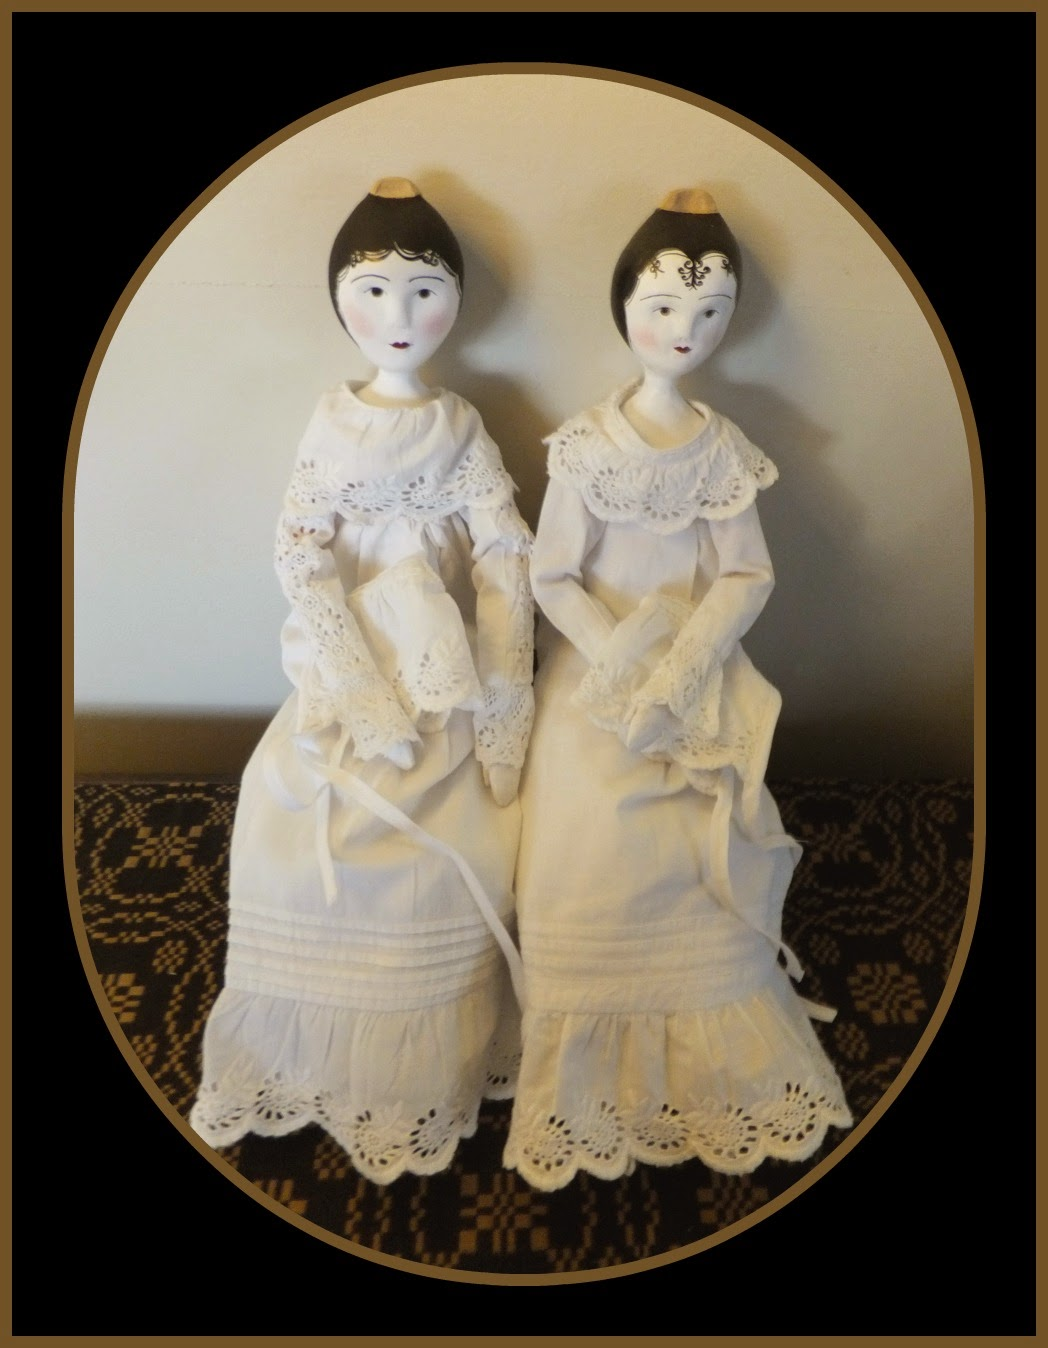 Wooden Tuck Comb Dolls